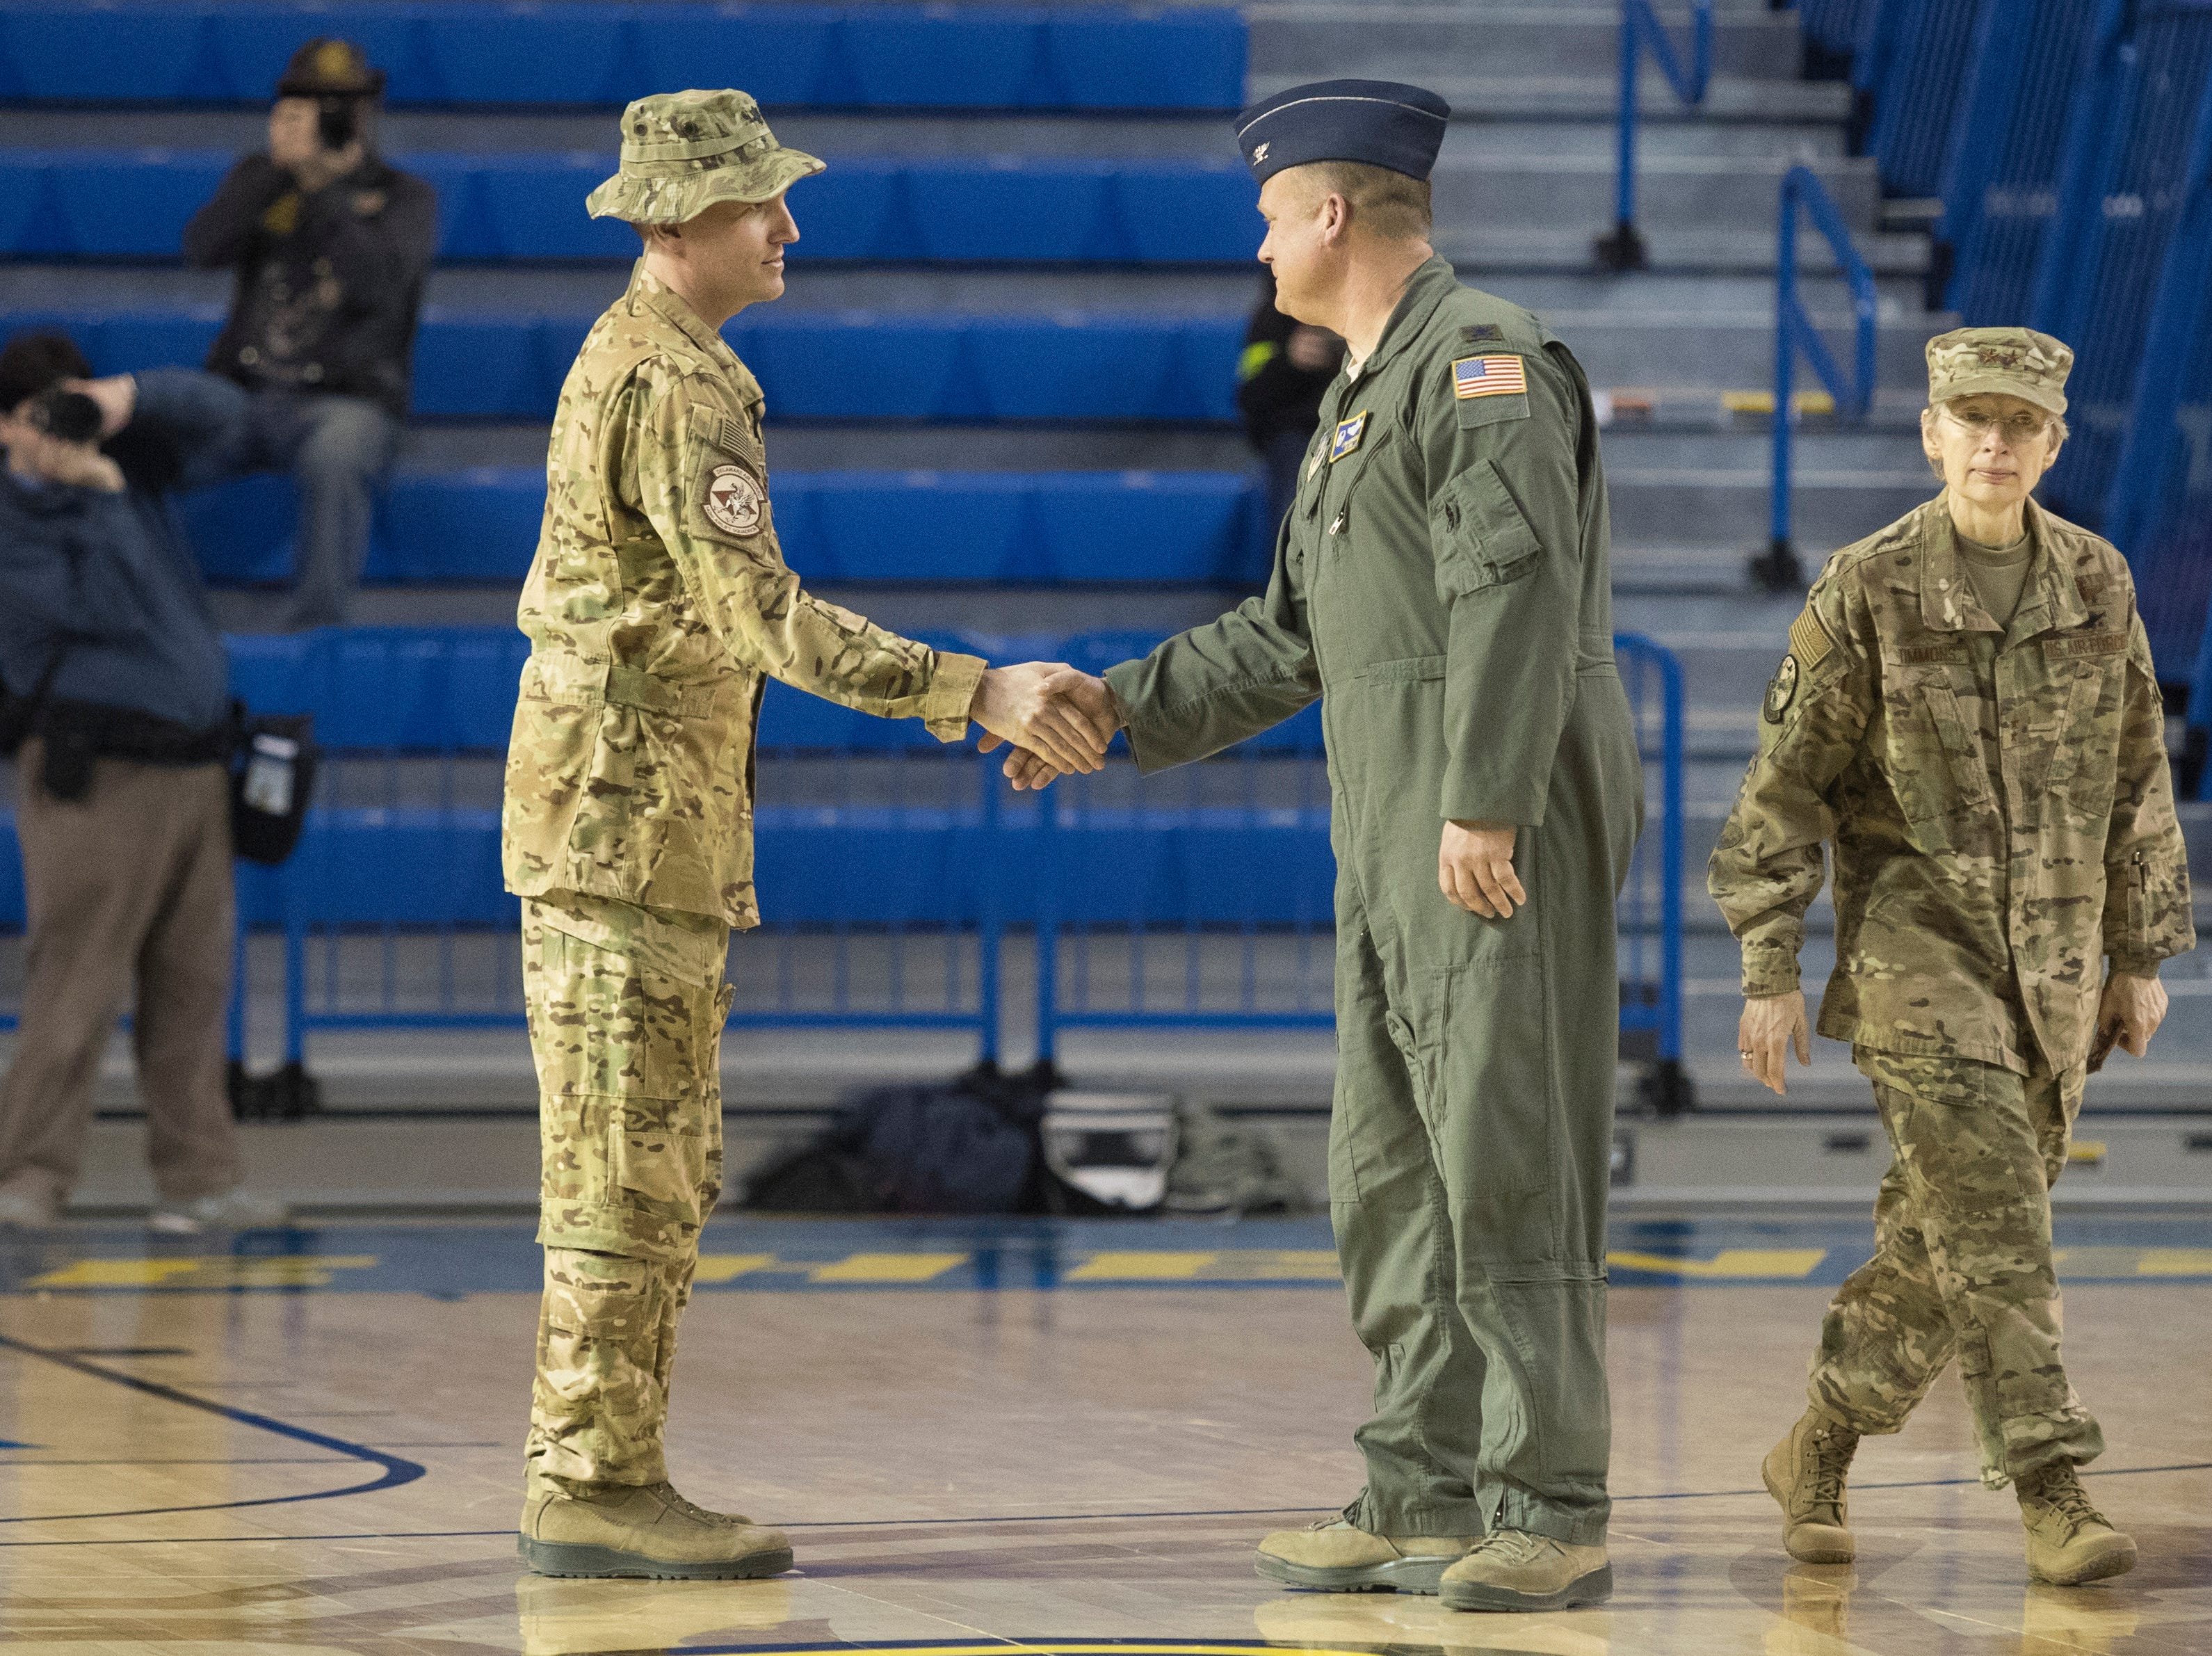 More than 200 members from the Delaware Air National Guard's 166th Airlift Wing were recognized during a homecoming ceremony Sunday afternoon at the Bob Carpenter Center.